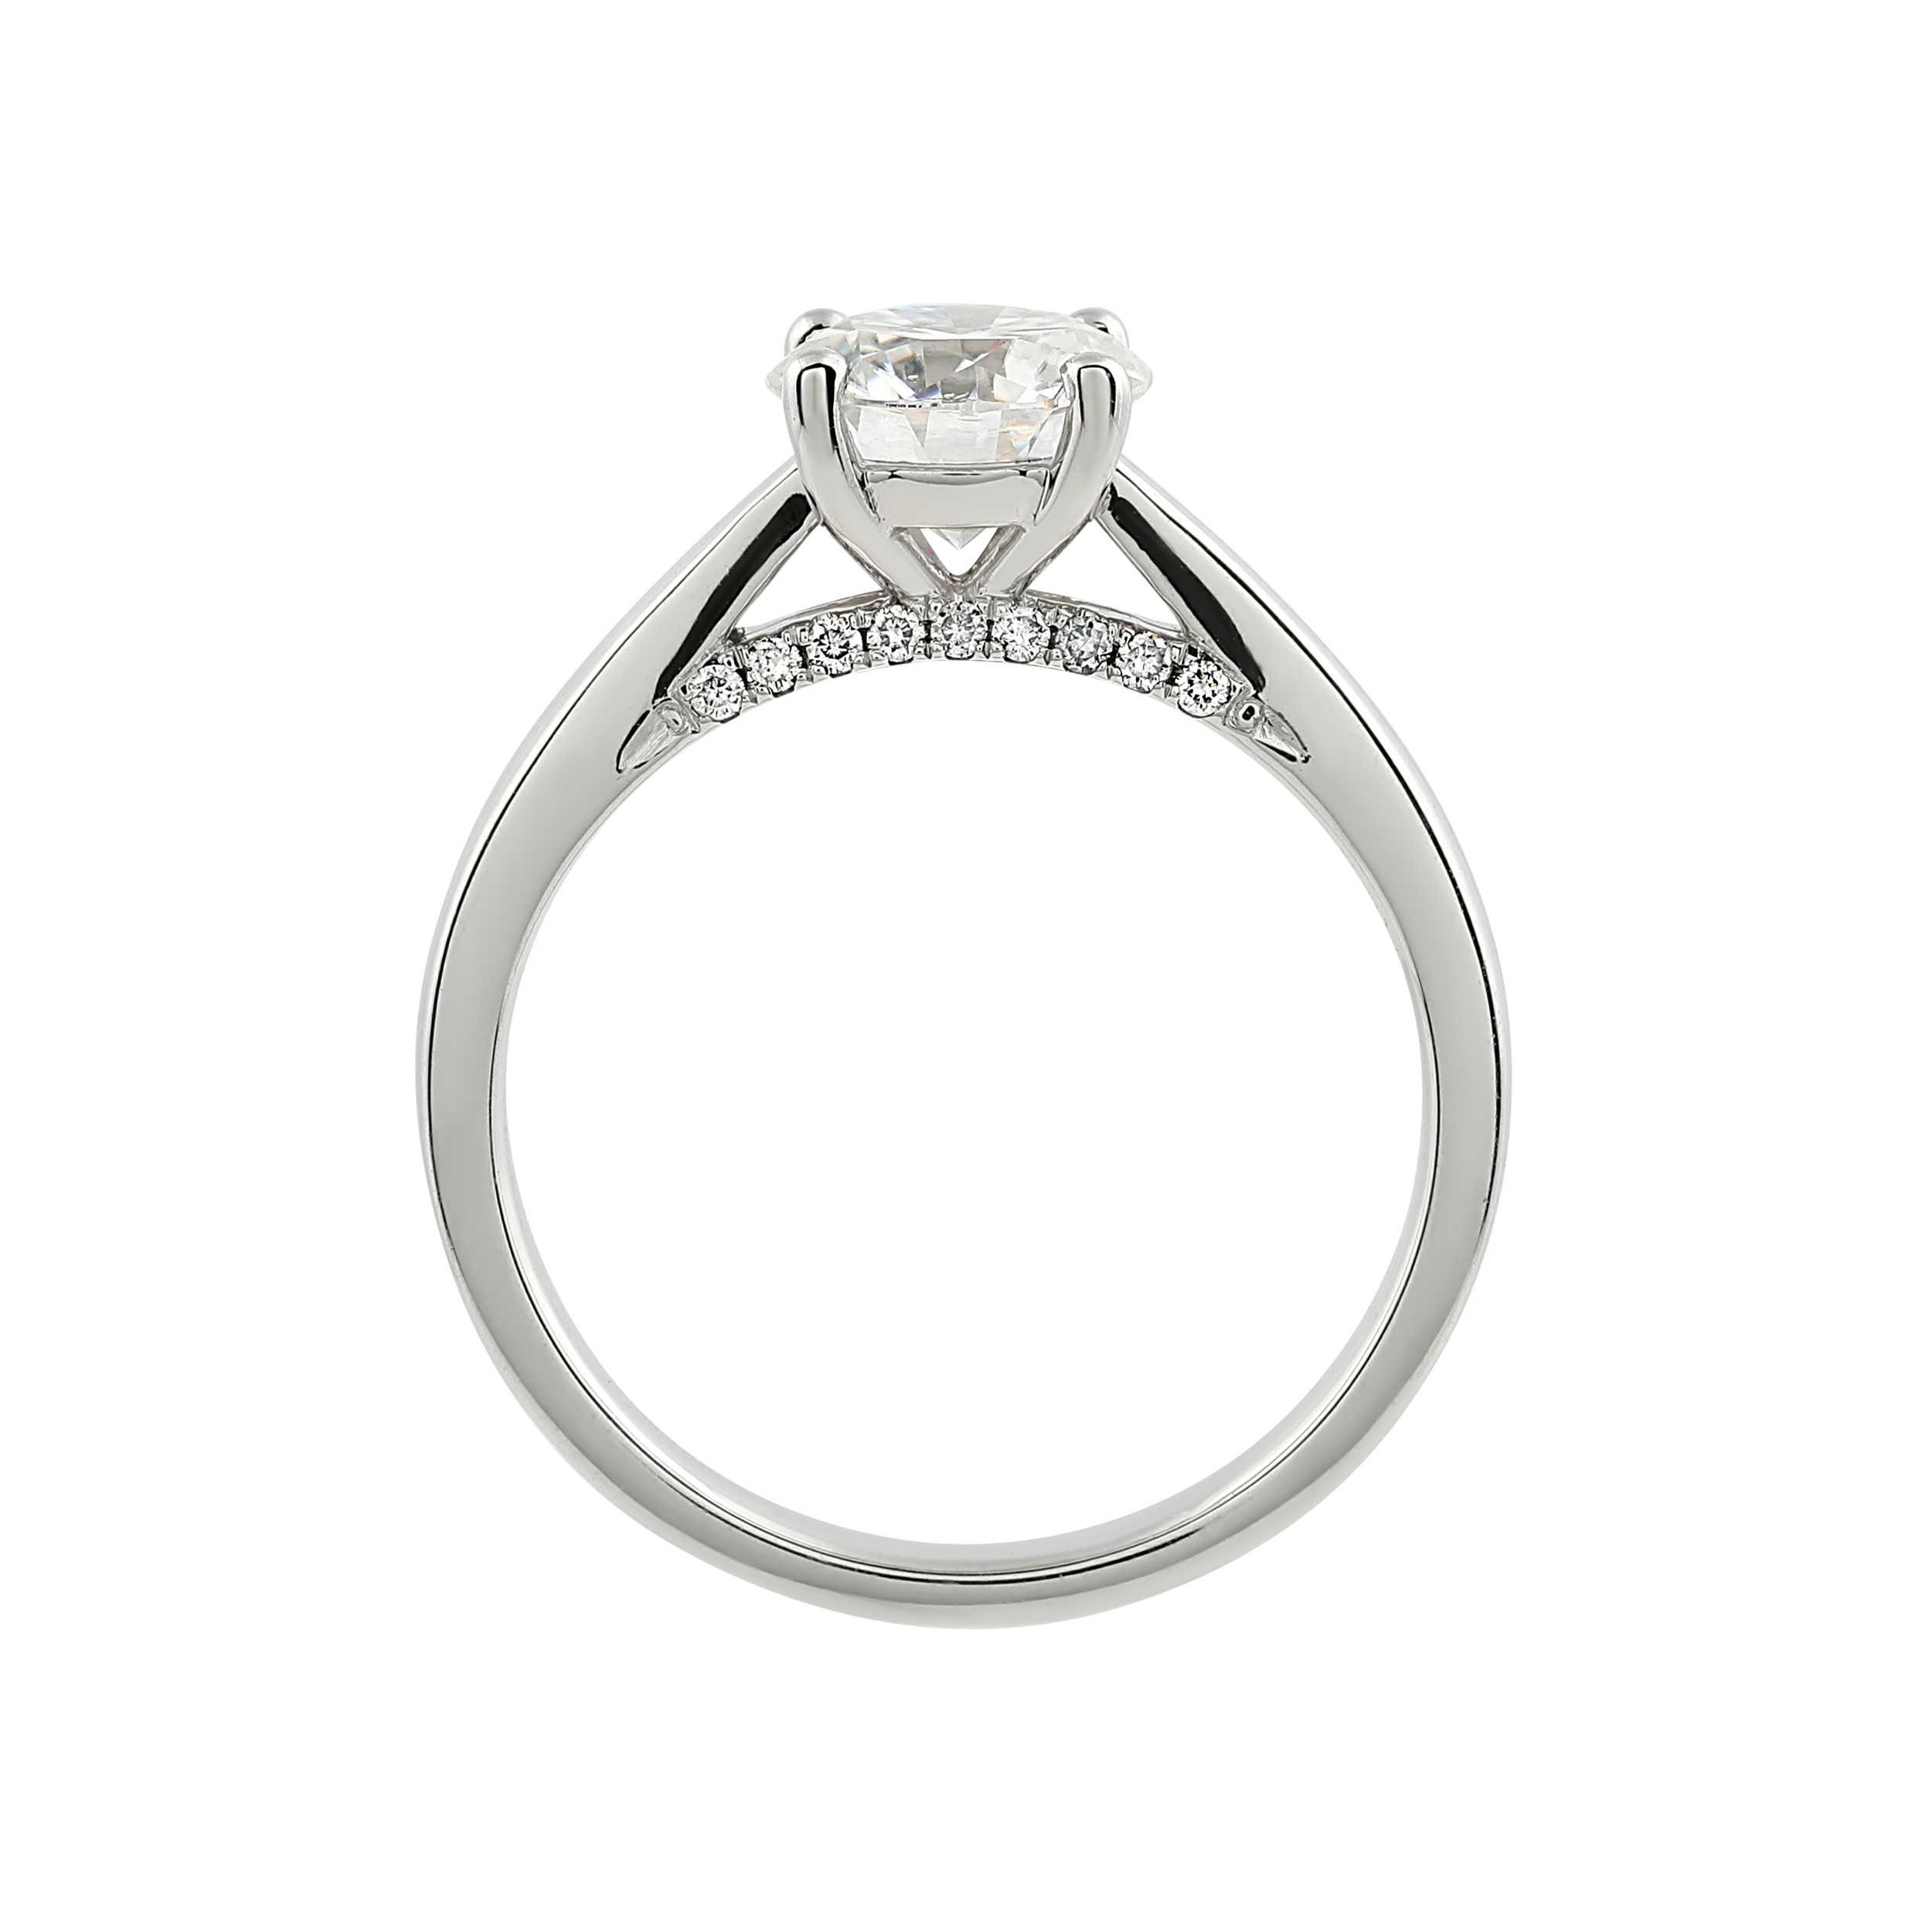 State Property Substate Bridal Hayes Diamond Ring 3 WG.png